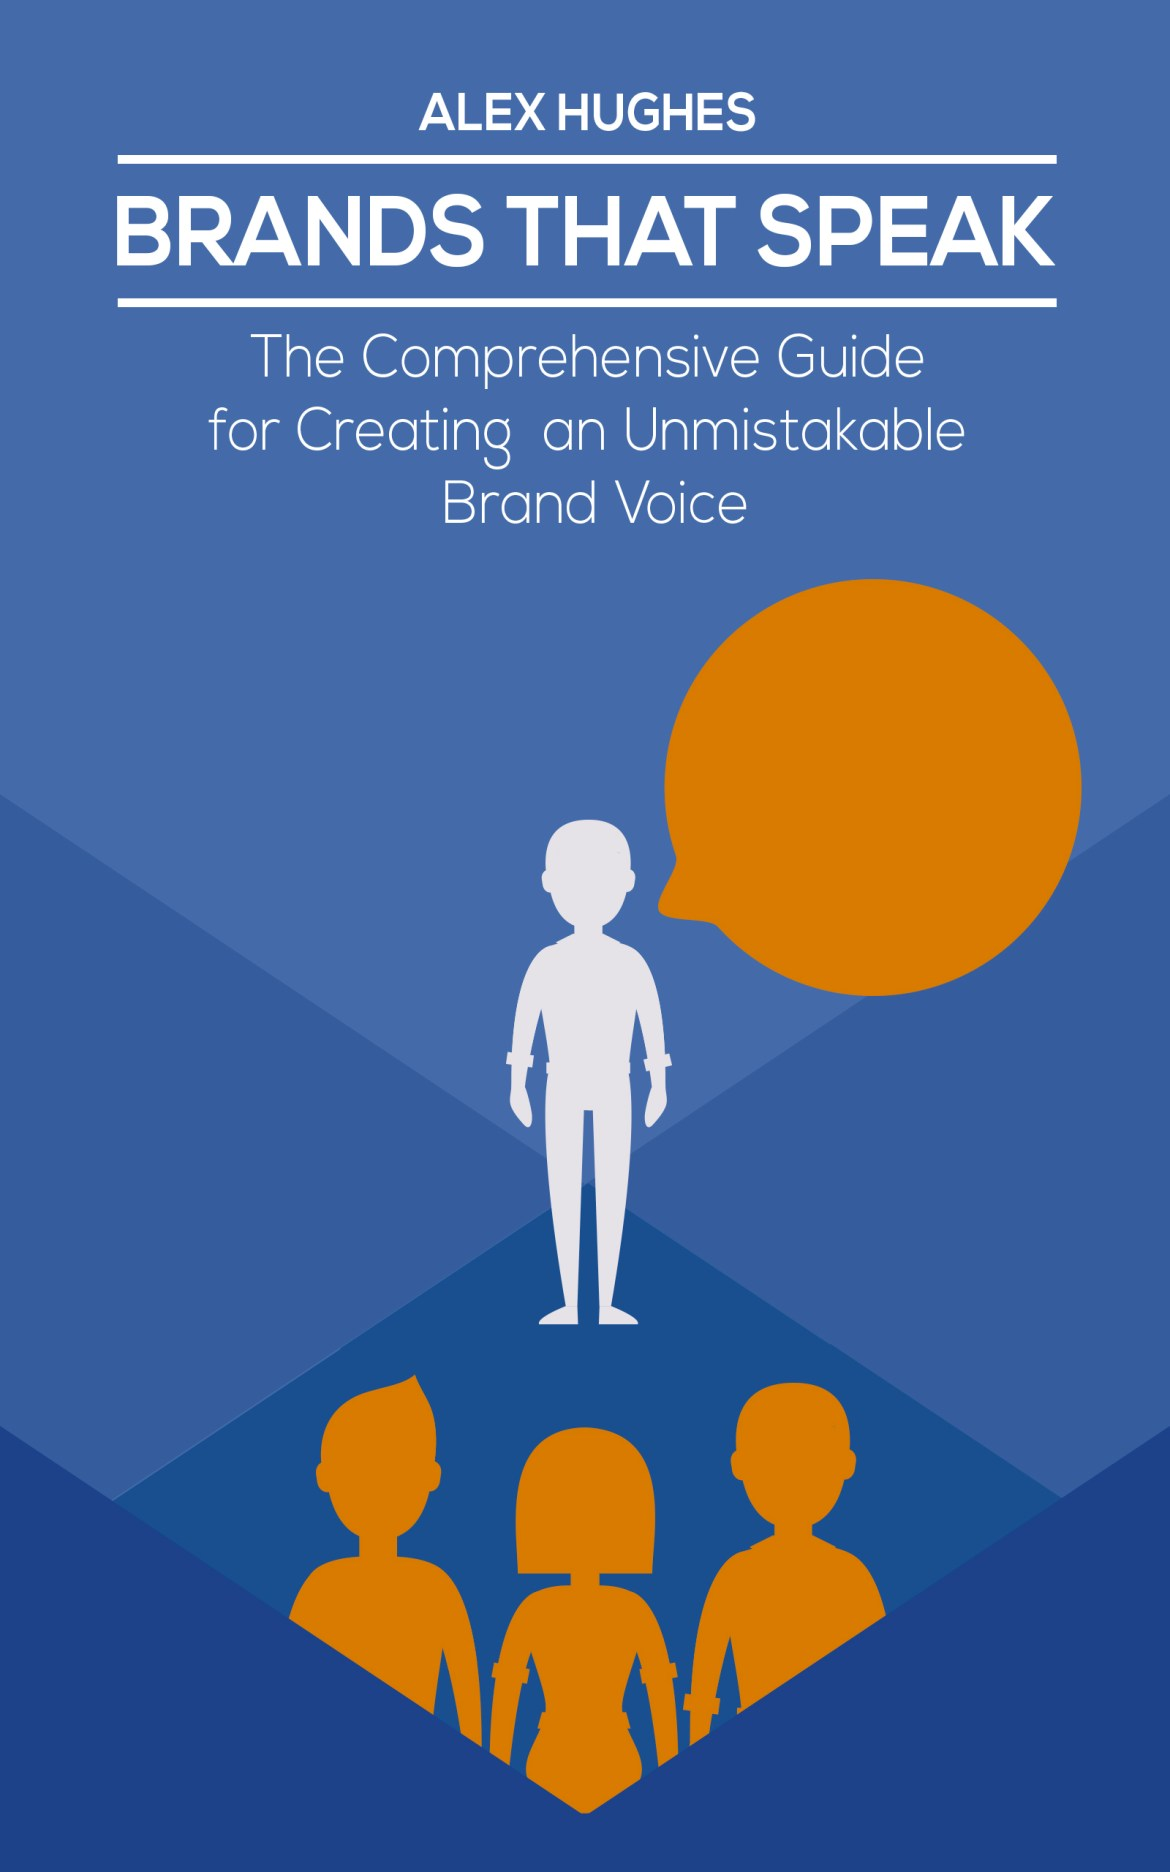 Brands That Speak will teach you how to create a brand voice.